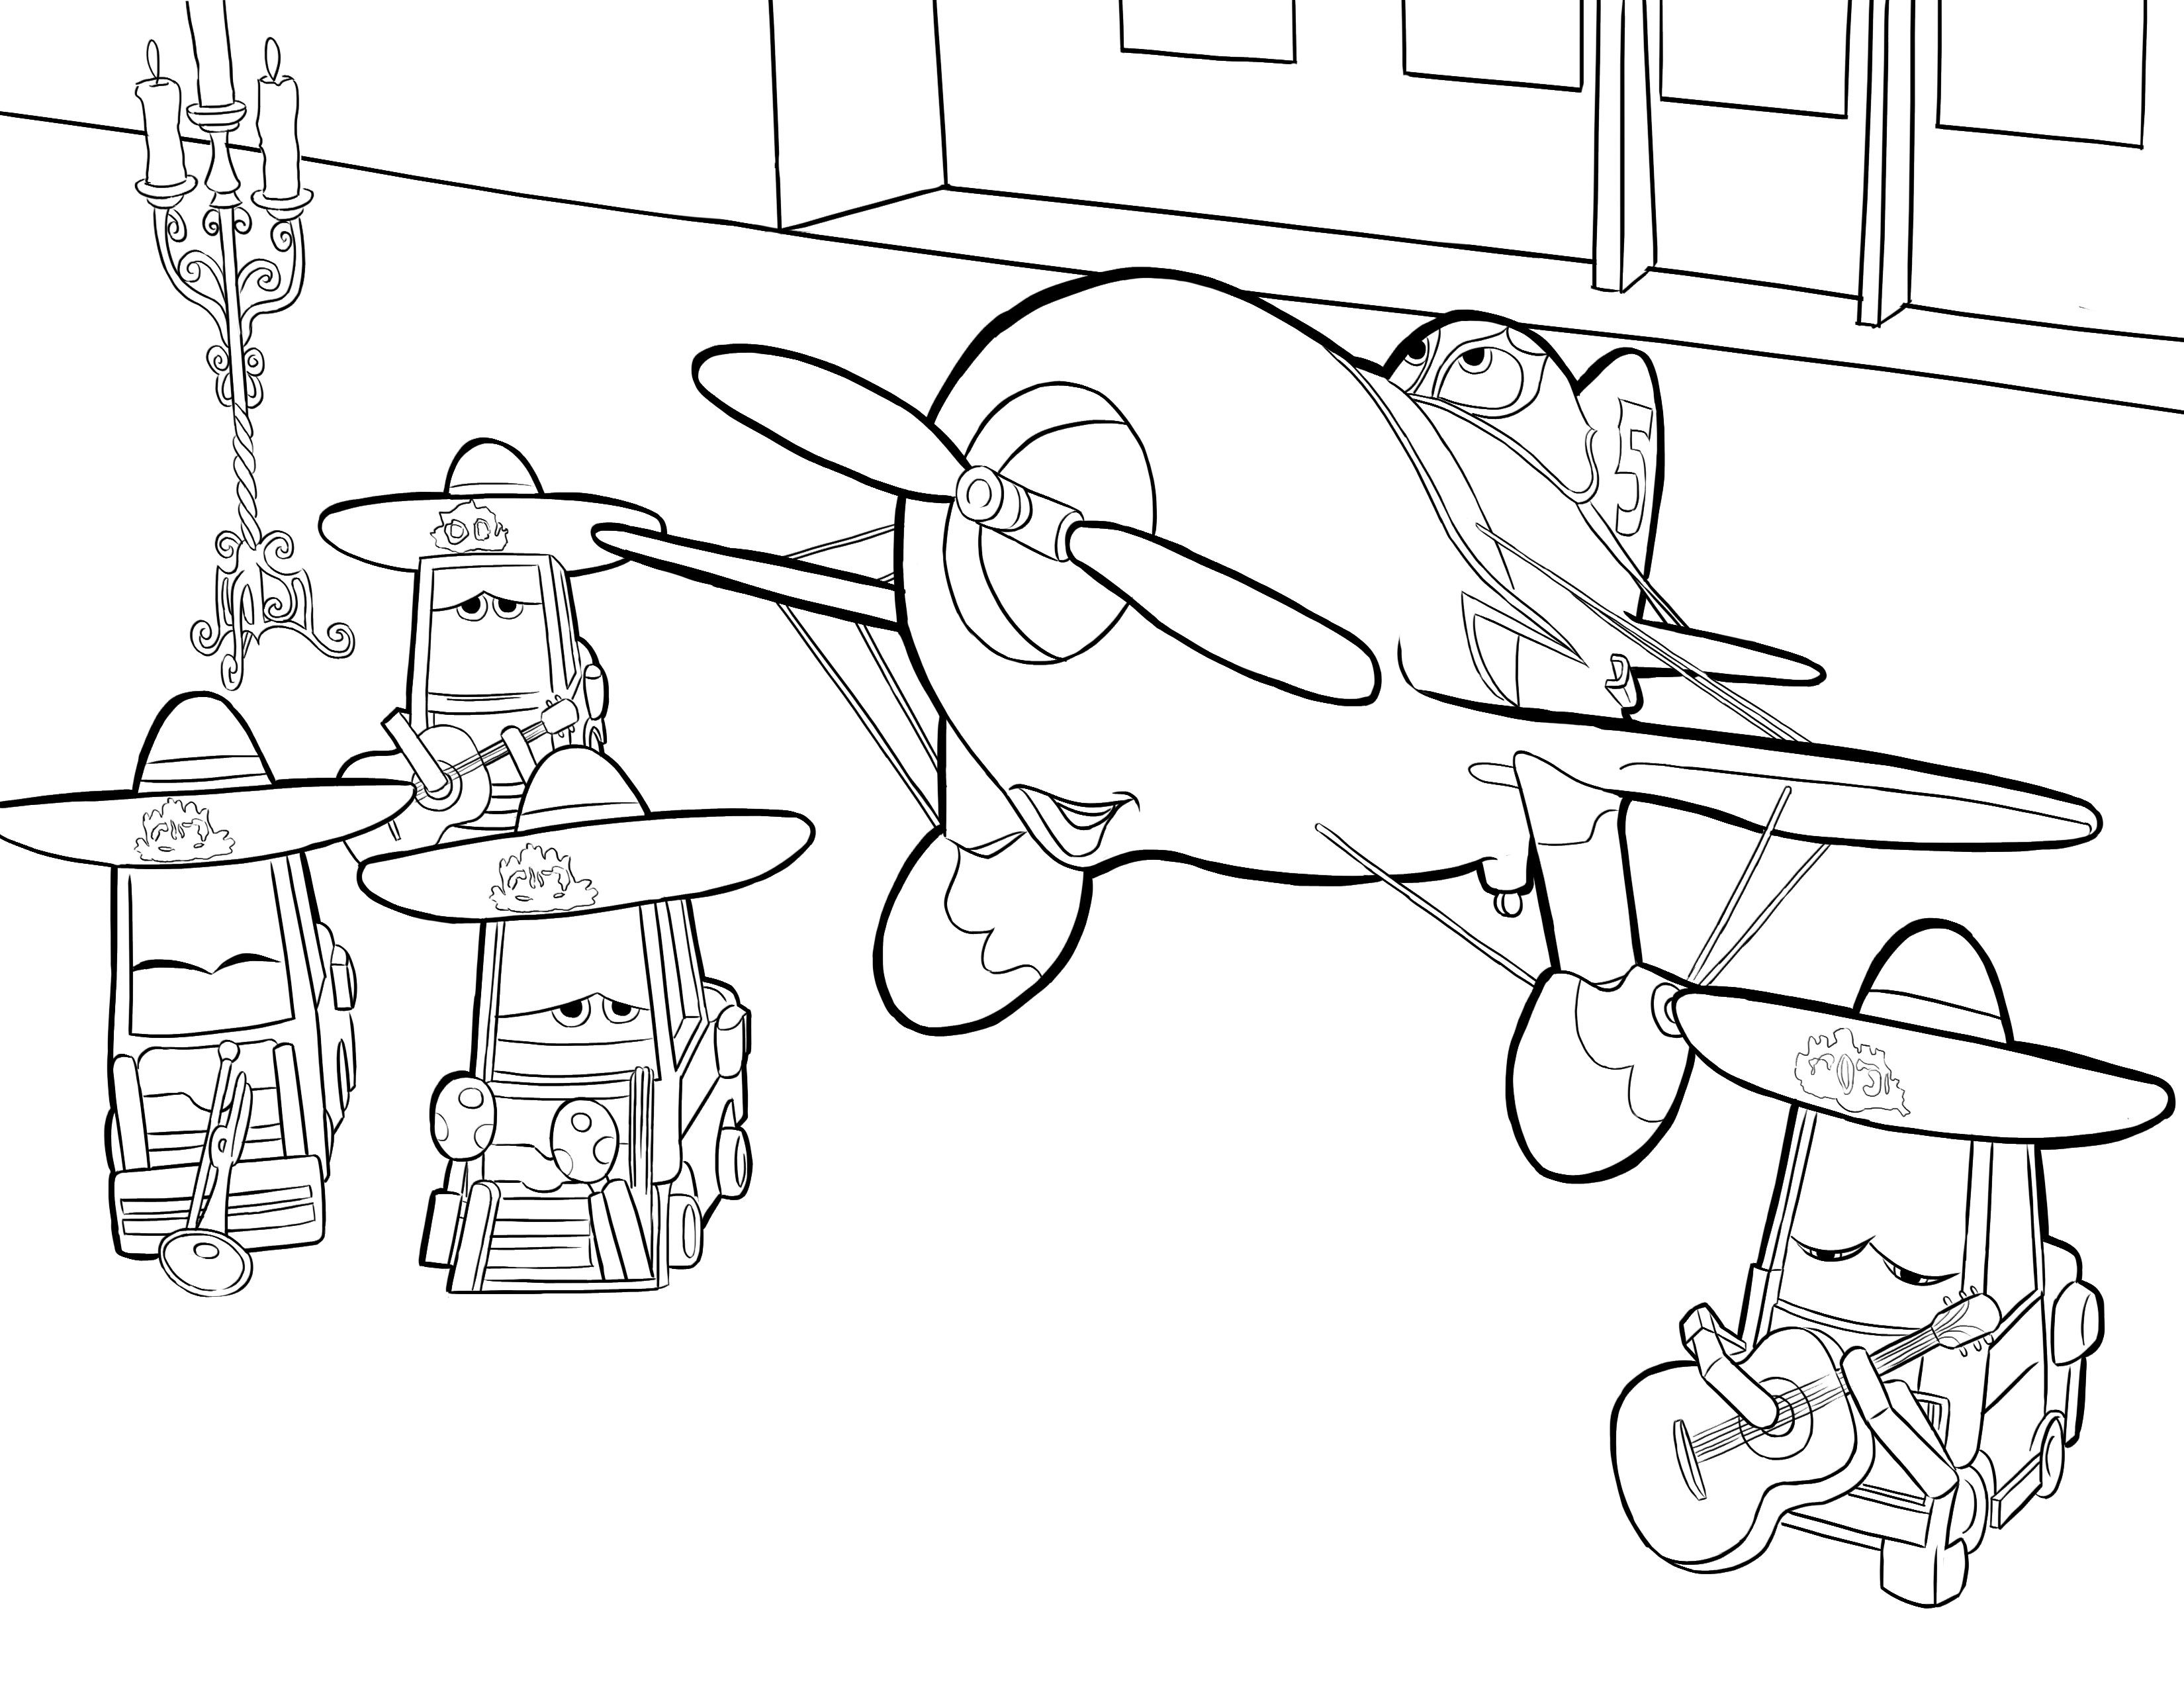 Disney's Planes Coloring Pages Sheet, Free Disney ...